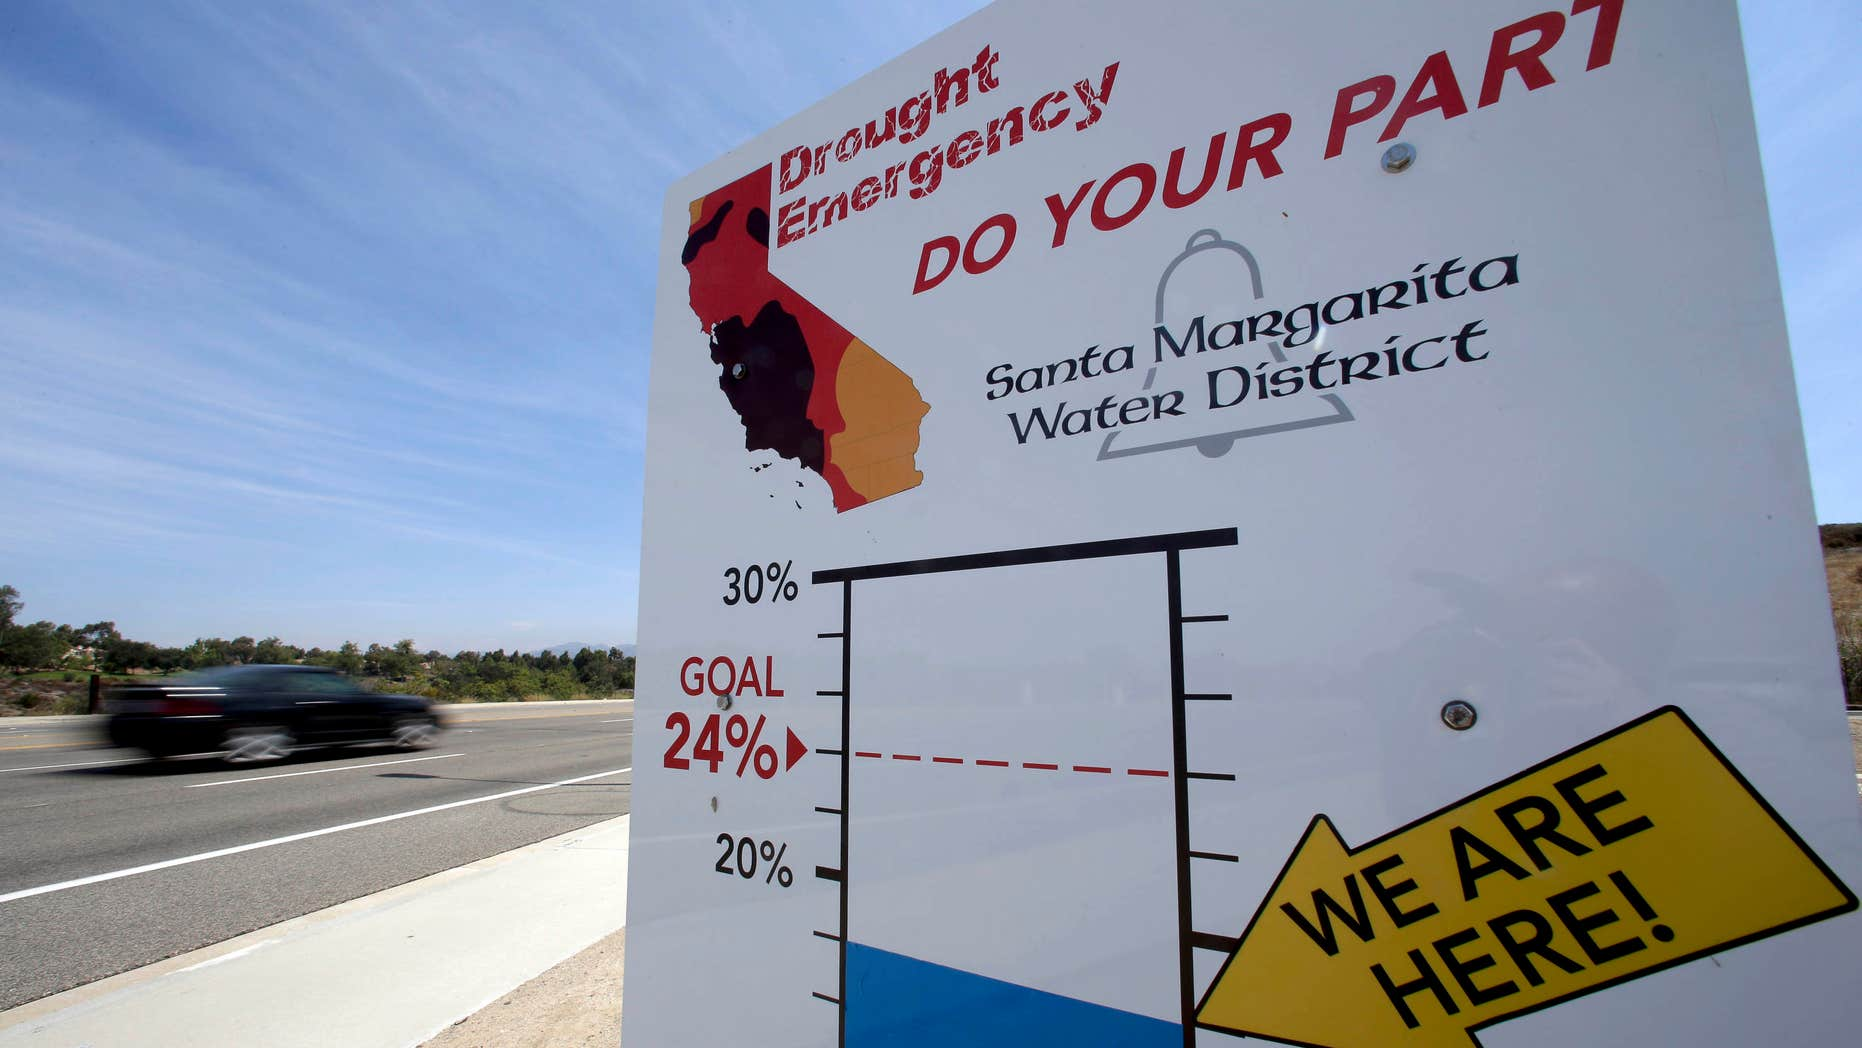 FILE - In this July 2, 2015 file photo, cars in Rancho Santa Margarita, Calif., drive by a sign encouraging residents to save water.